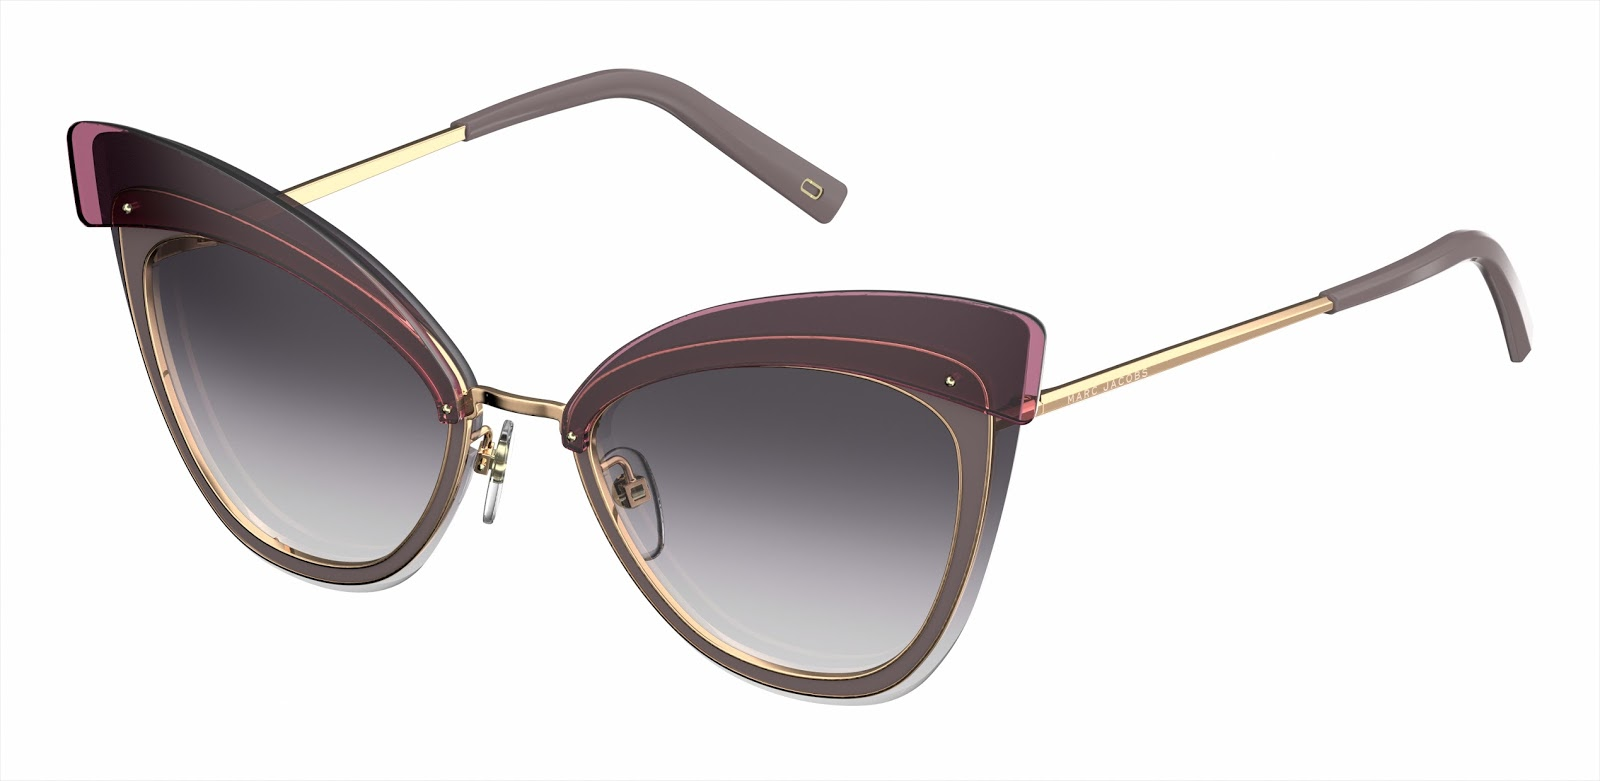 ... shaped metal sunglasses. the two models represent the highest levels of  craftsmanship. the panthos shaped marc 101 s and the cat-eye shaped marc  100 s ... 47735ccf87